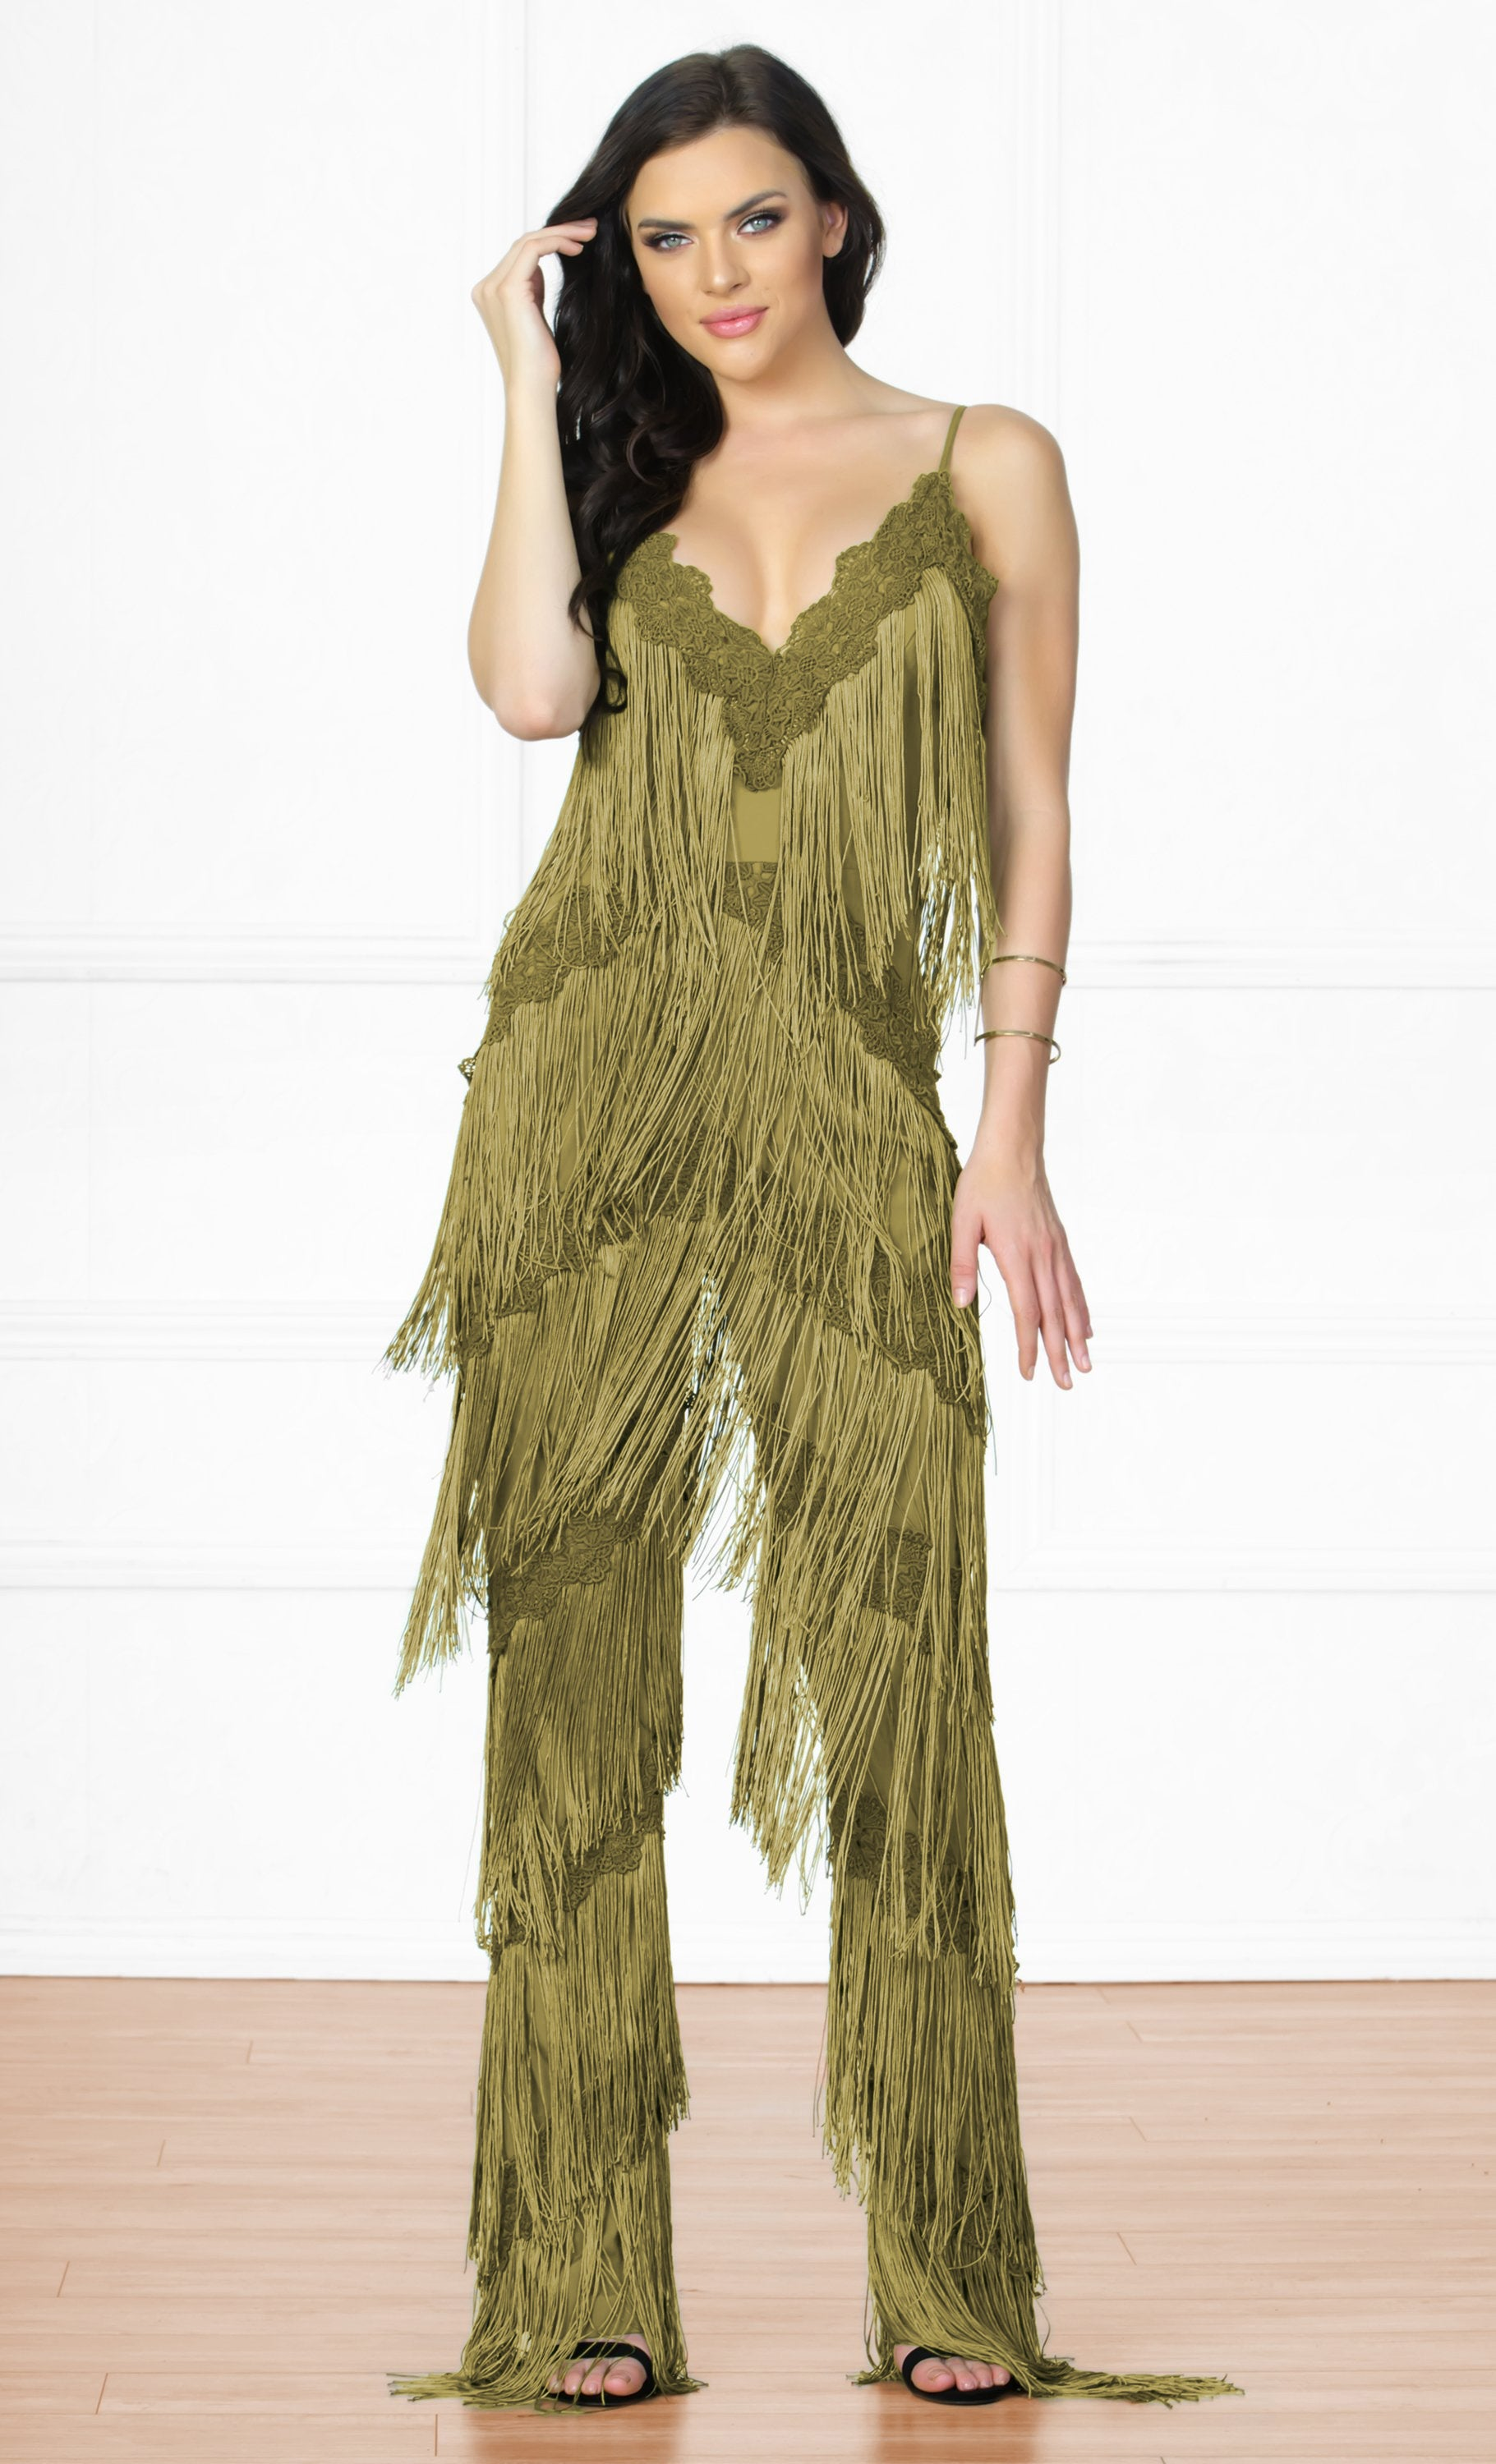 4616bbdc4d3 Indie XO Tinsel Town Army Green Sleeveless Spaghetti Strap Plunge V Neck  Fringe Tiered Jumpsuit -